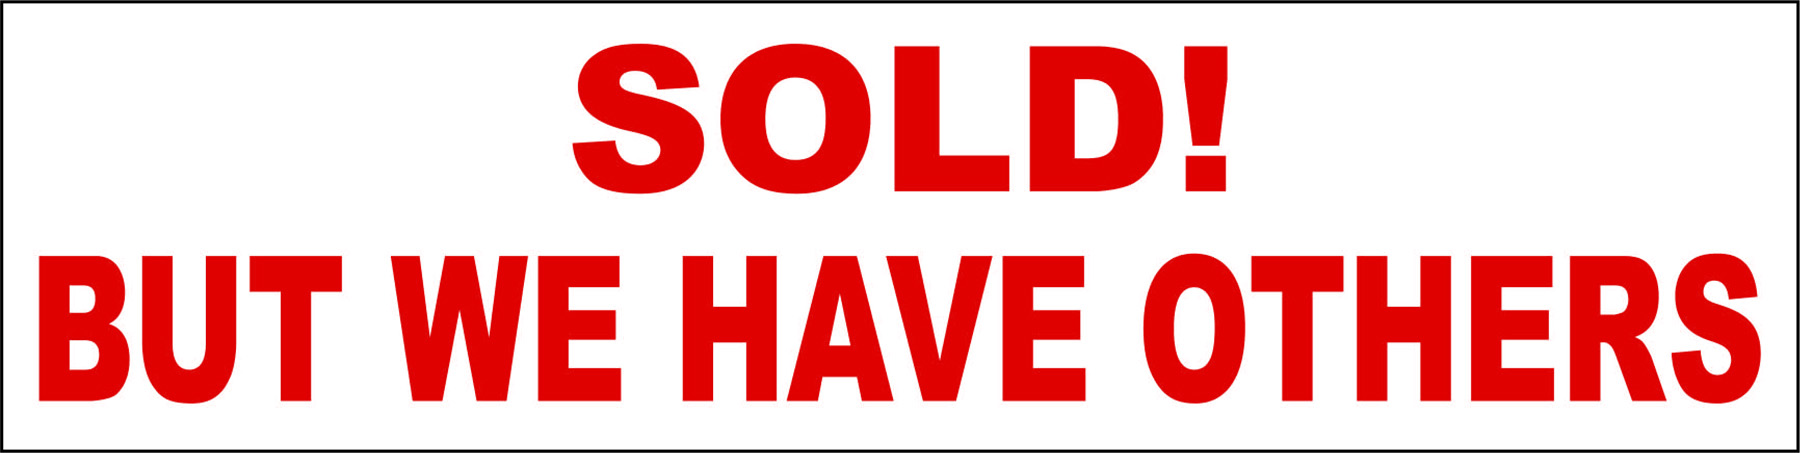 Sold! But We Have Others